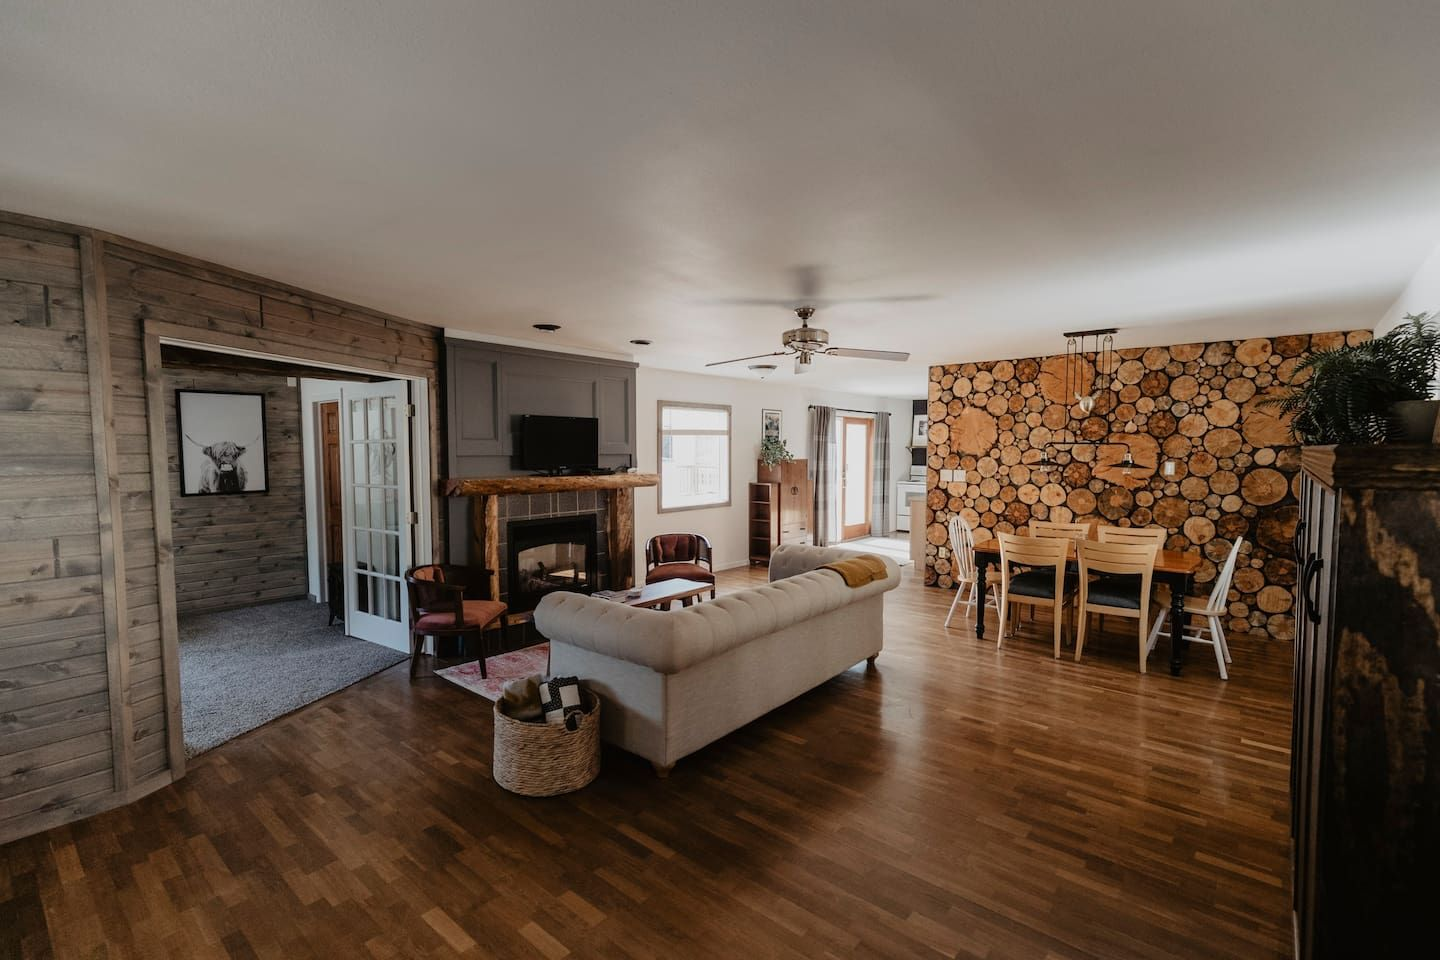 The Woodsley Apartments For Rent In Keystone South Dakota United States Apartments For Rent Large Living Room Indoor Fireplace